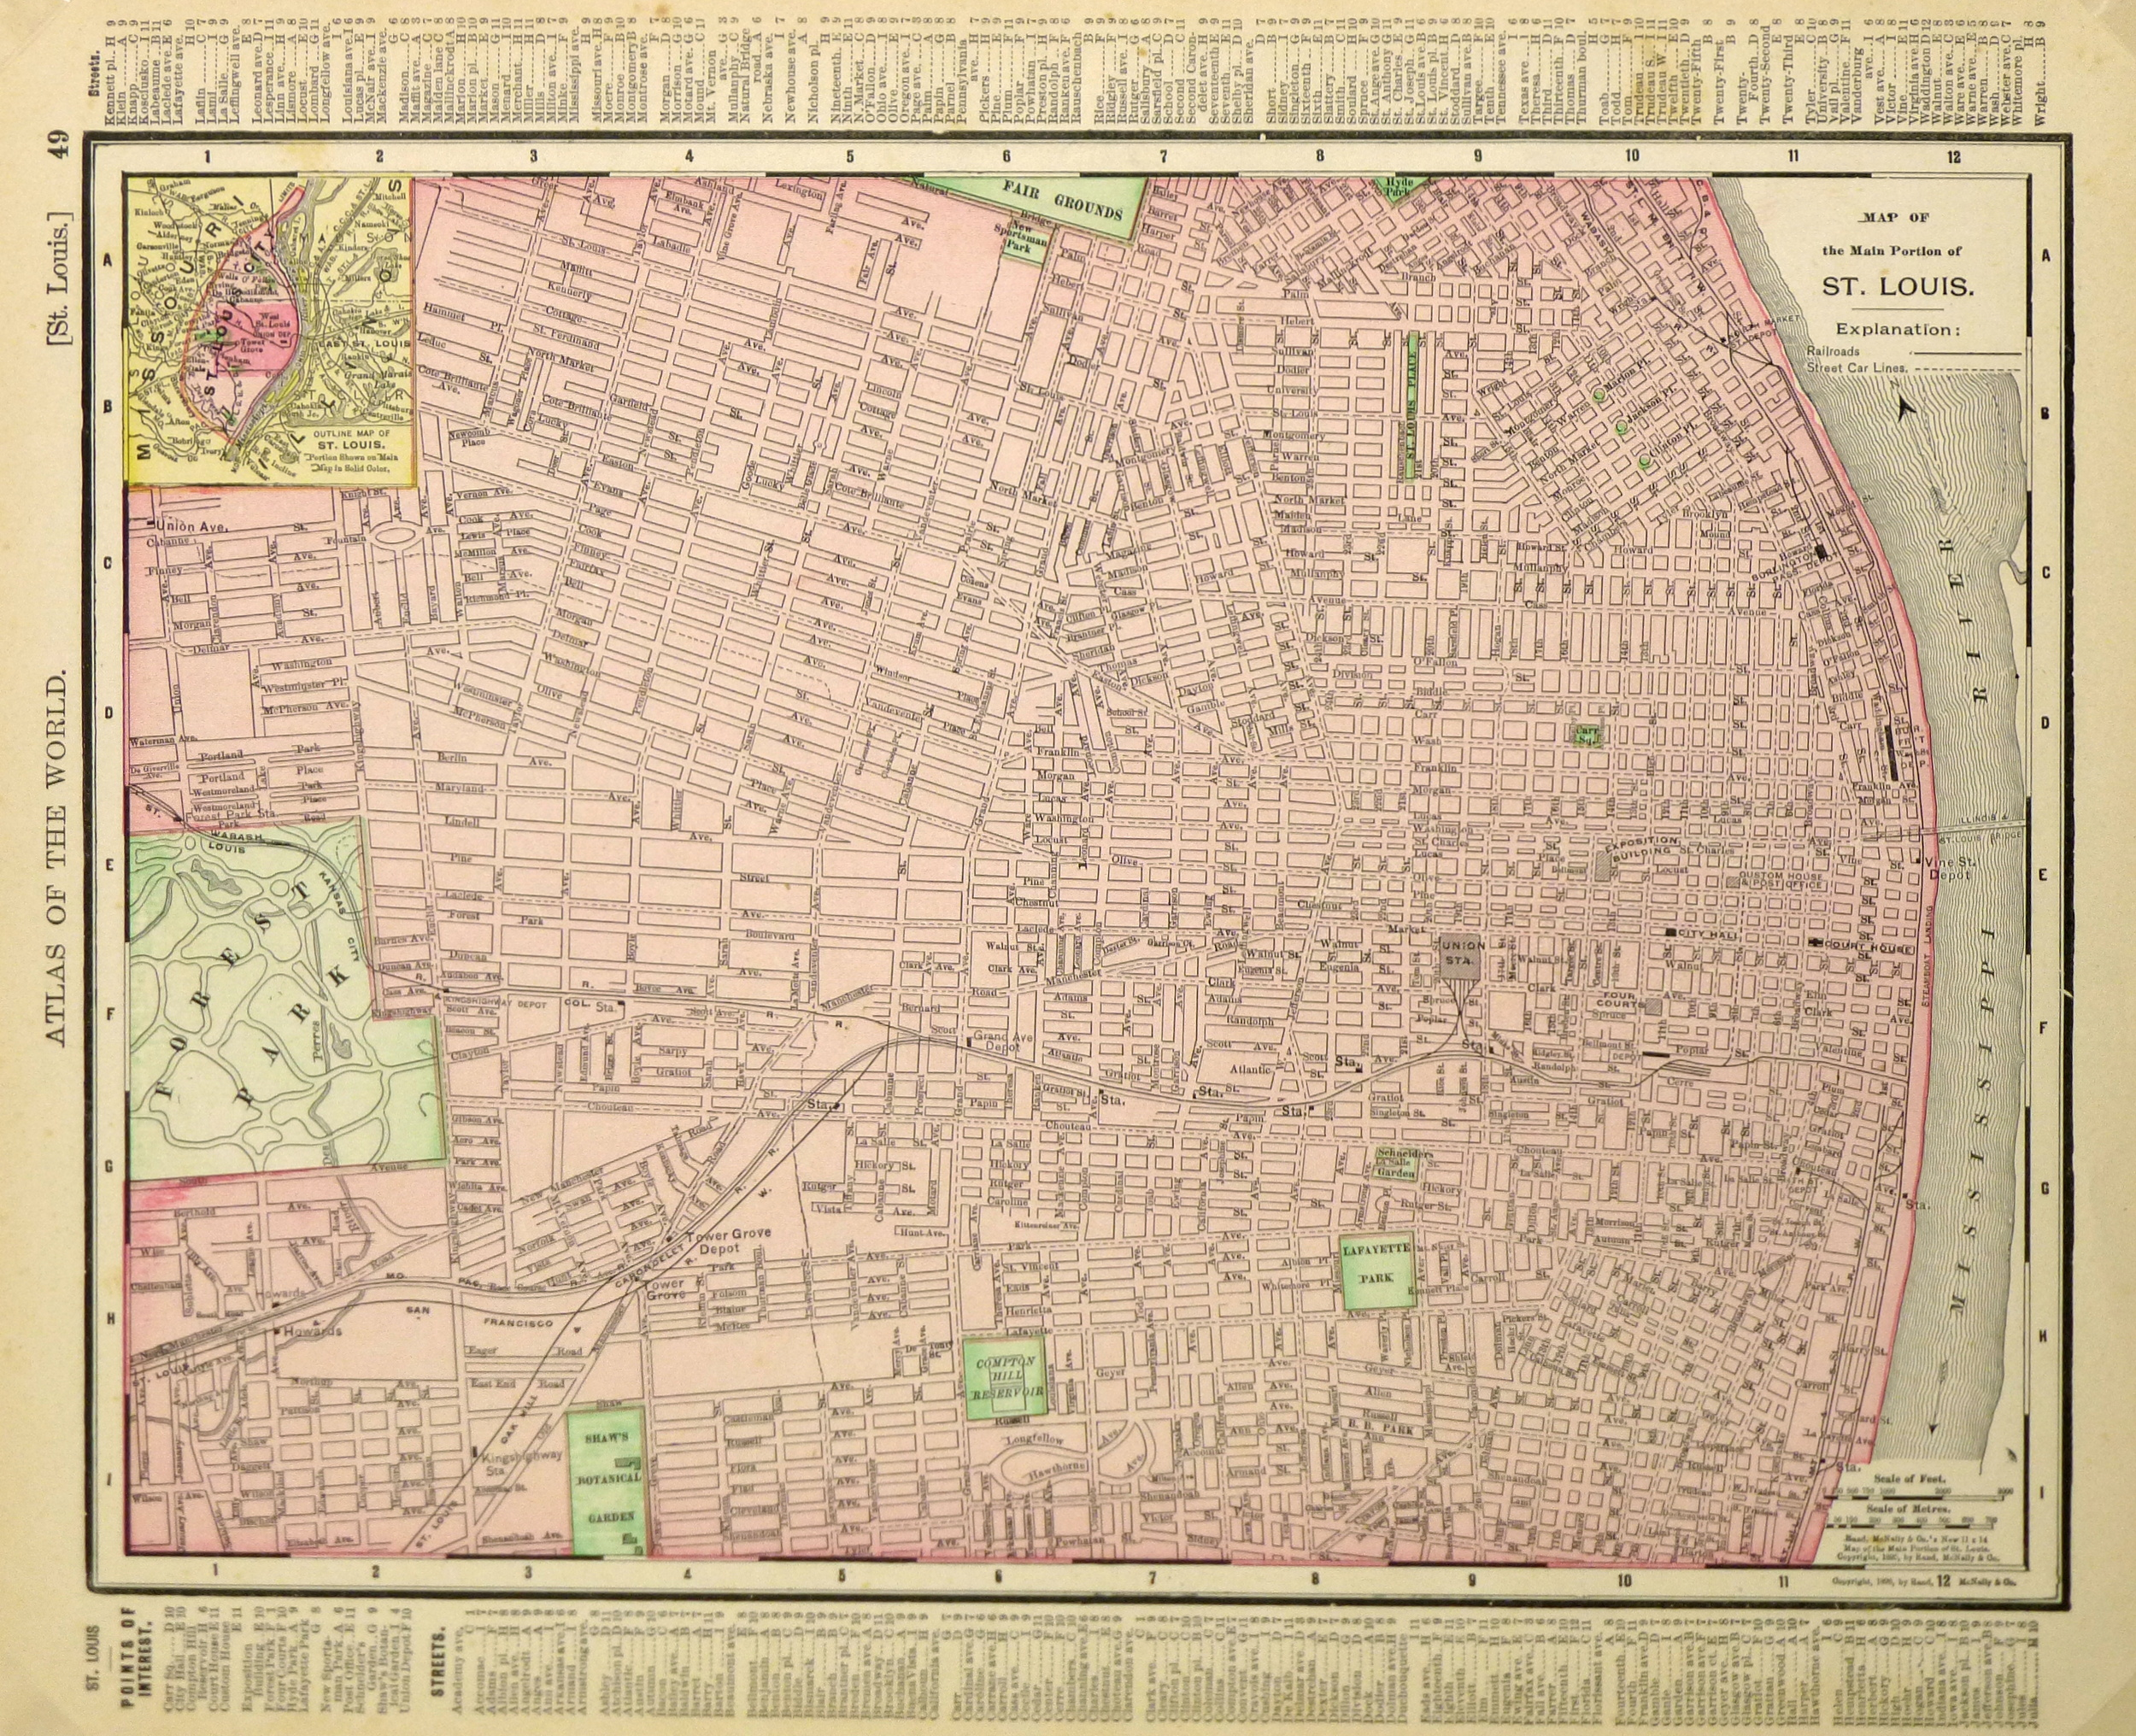 St. Louis Map,1895-main-6435K